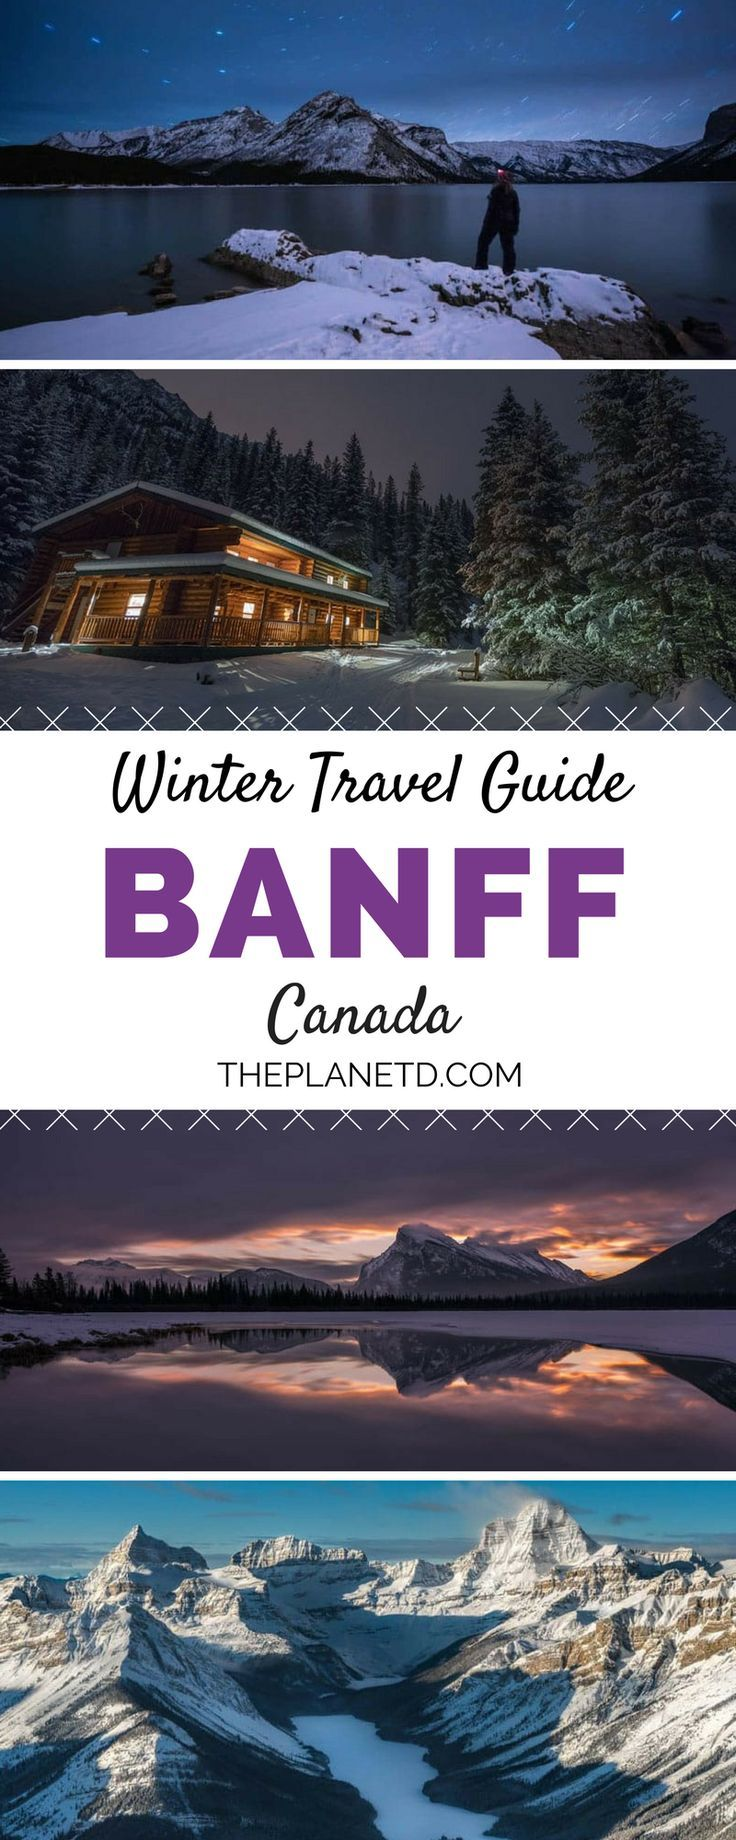 A complete guide to exploring Banff National Park during winter. Best things to do including snowboarding and skiing, photography tours, dog sledding, skating and more. Winter travel in Alberta, Canada.   Blog by the Planet D #Banff #Canada